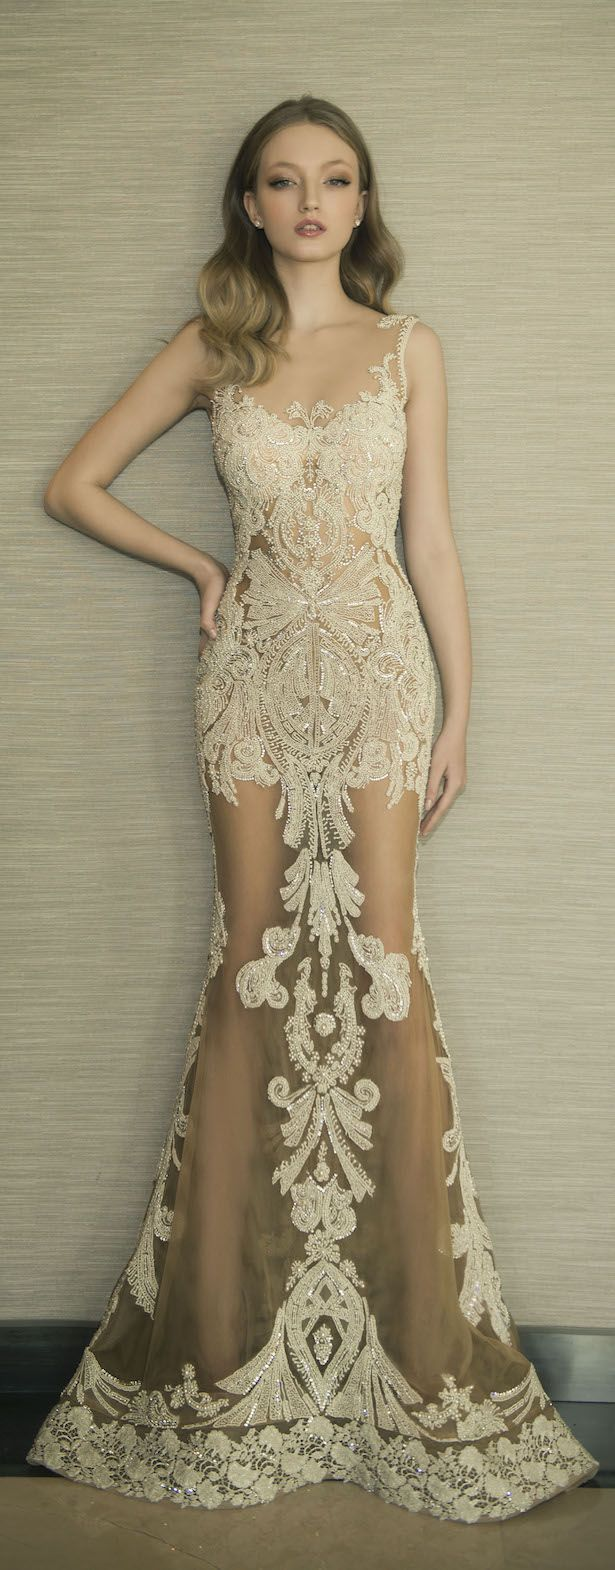 Best 20  Classy Wedding Dress ideas on Pinterest | Simple classy ...